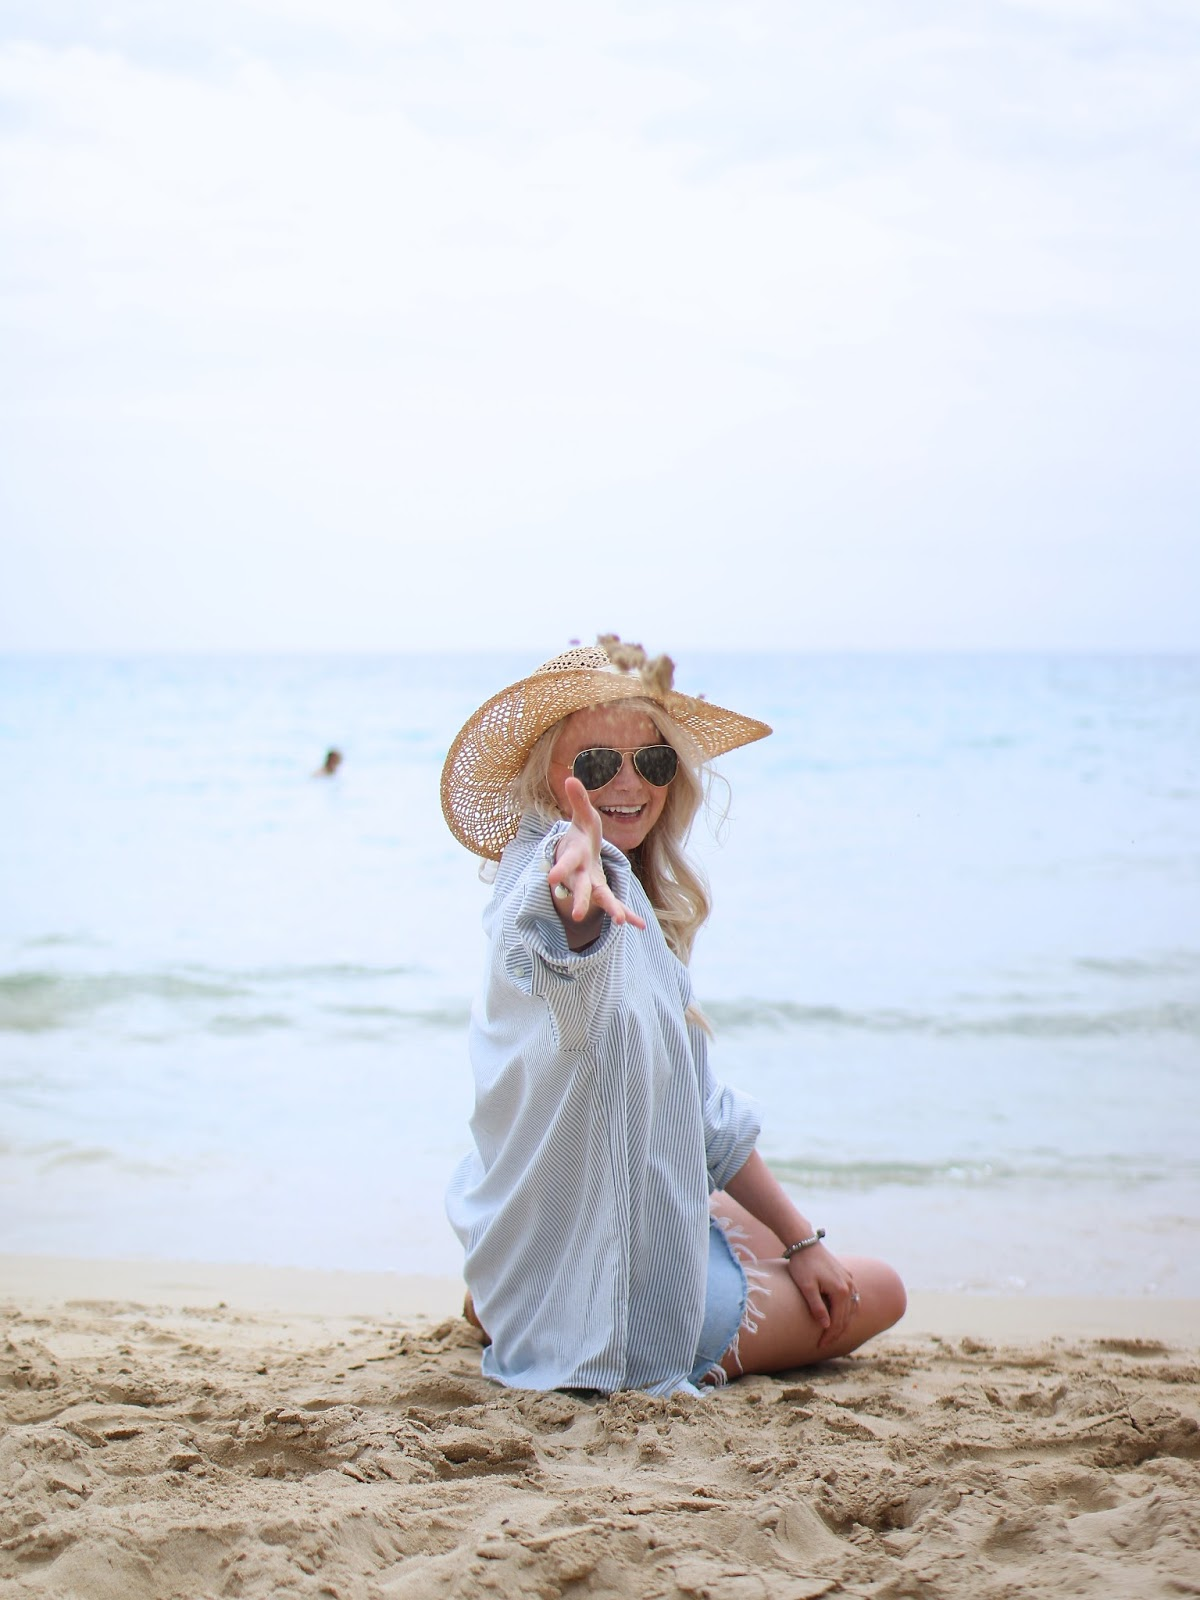 blonde wearing floppy sunhat on the beach throwing sand at the camera